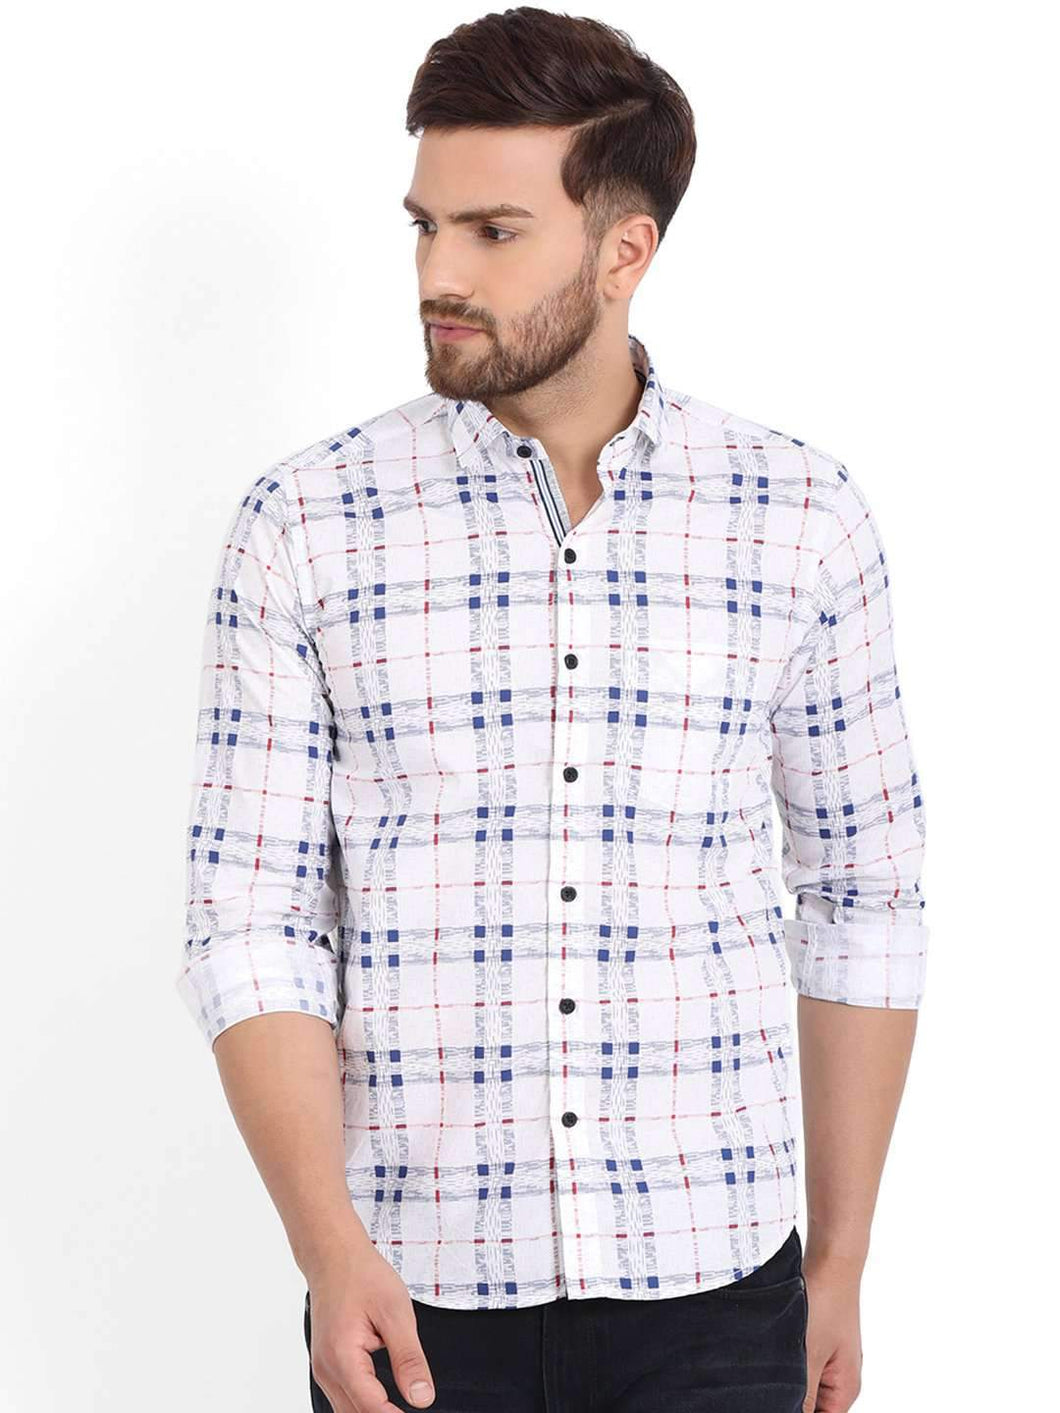 Richlook White/Grey Printed Casual Shirt